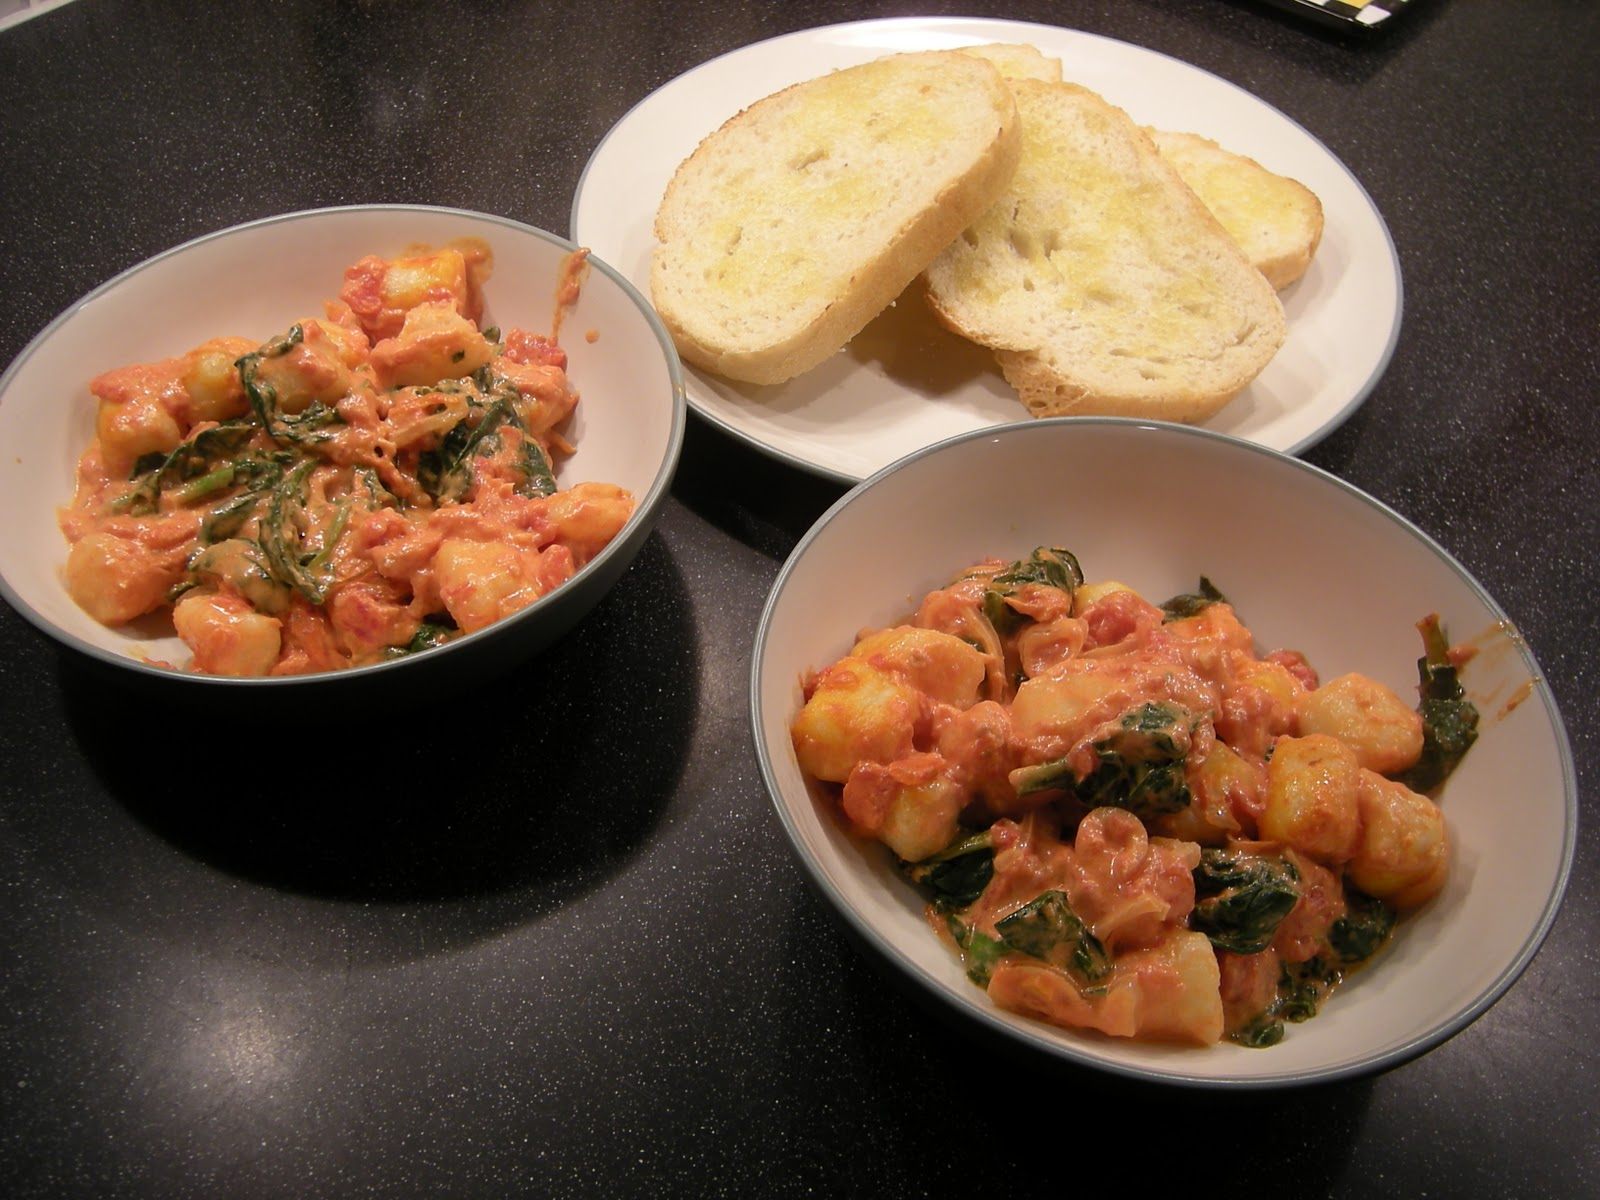 The Zippicurean: Gnocchi Baked with Spinach in Goat Cheese ...